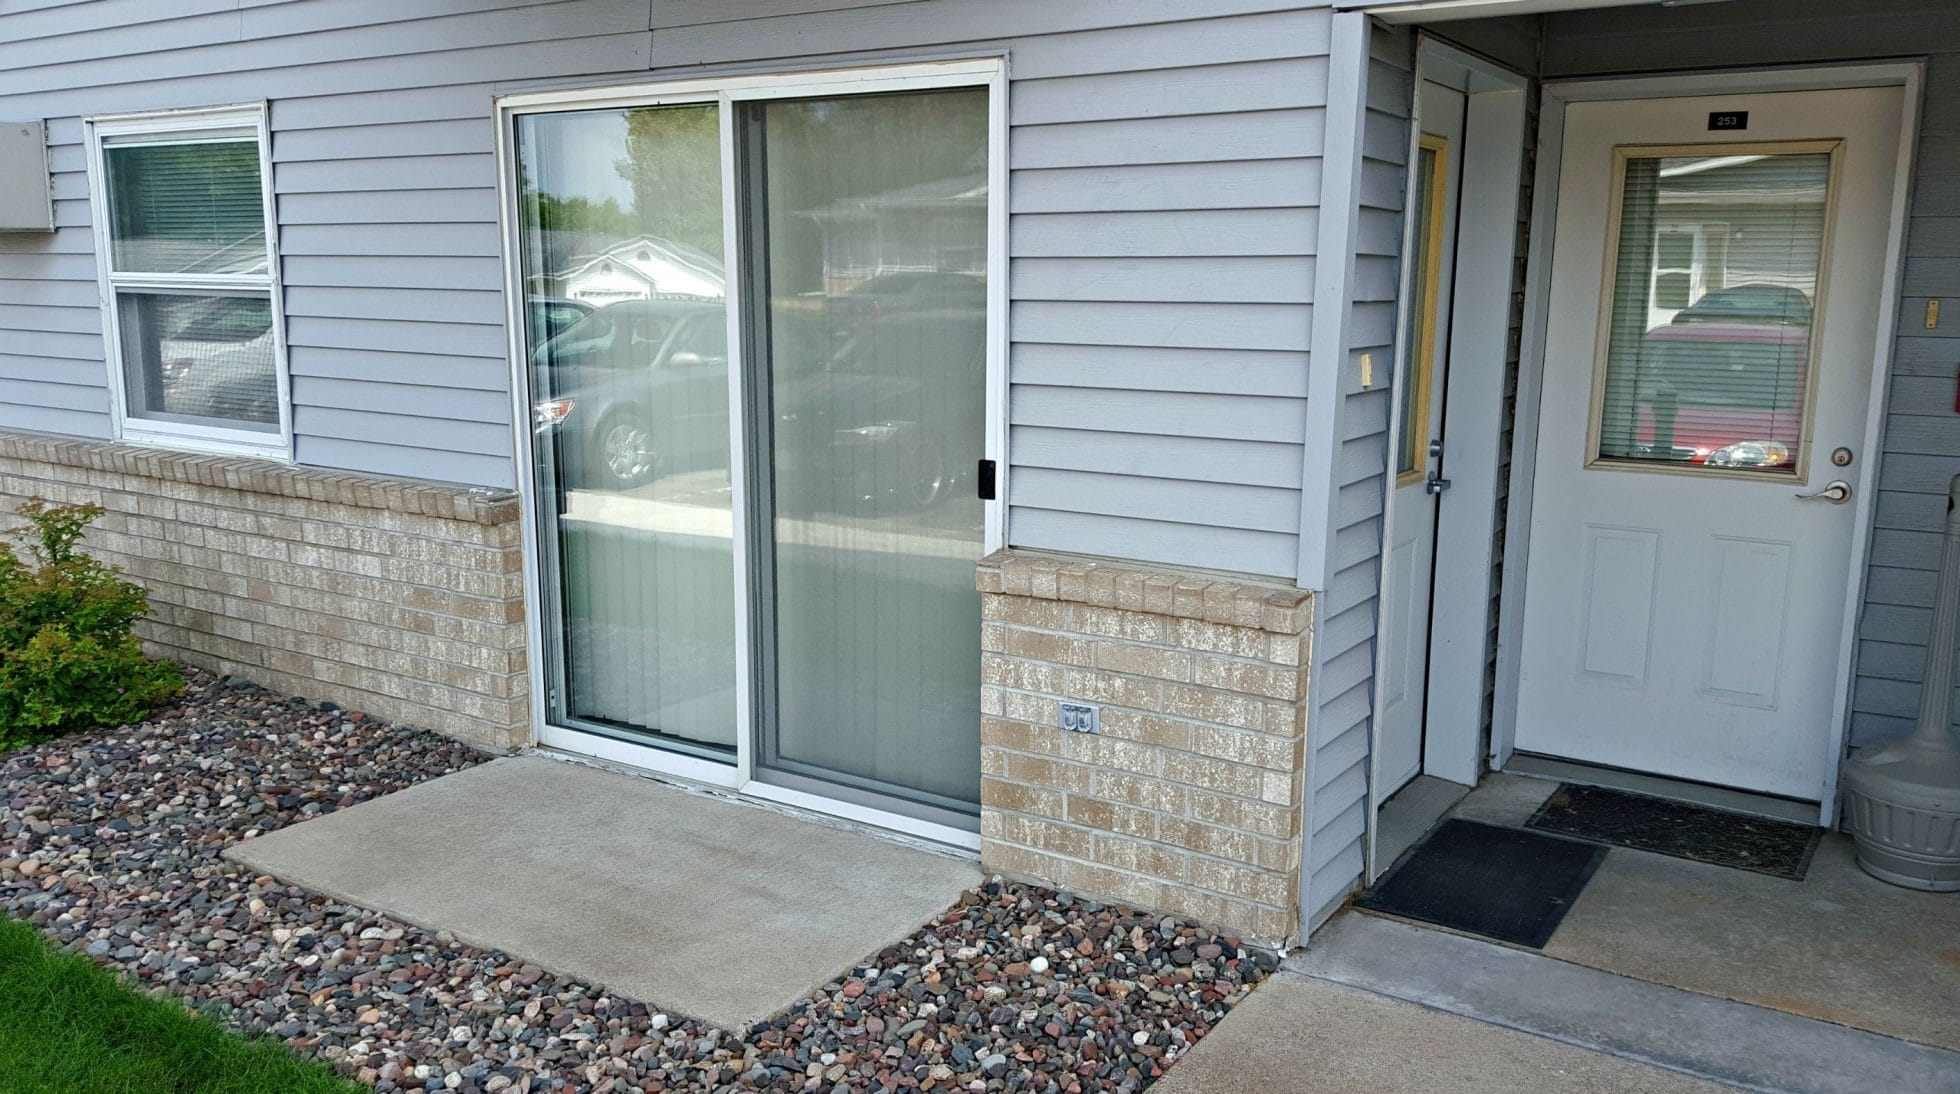 Pinedale apartments and red cedar townhomes menomonie wi - One bedroom apartments menomonie wi ...